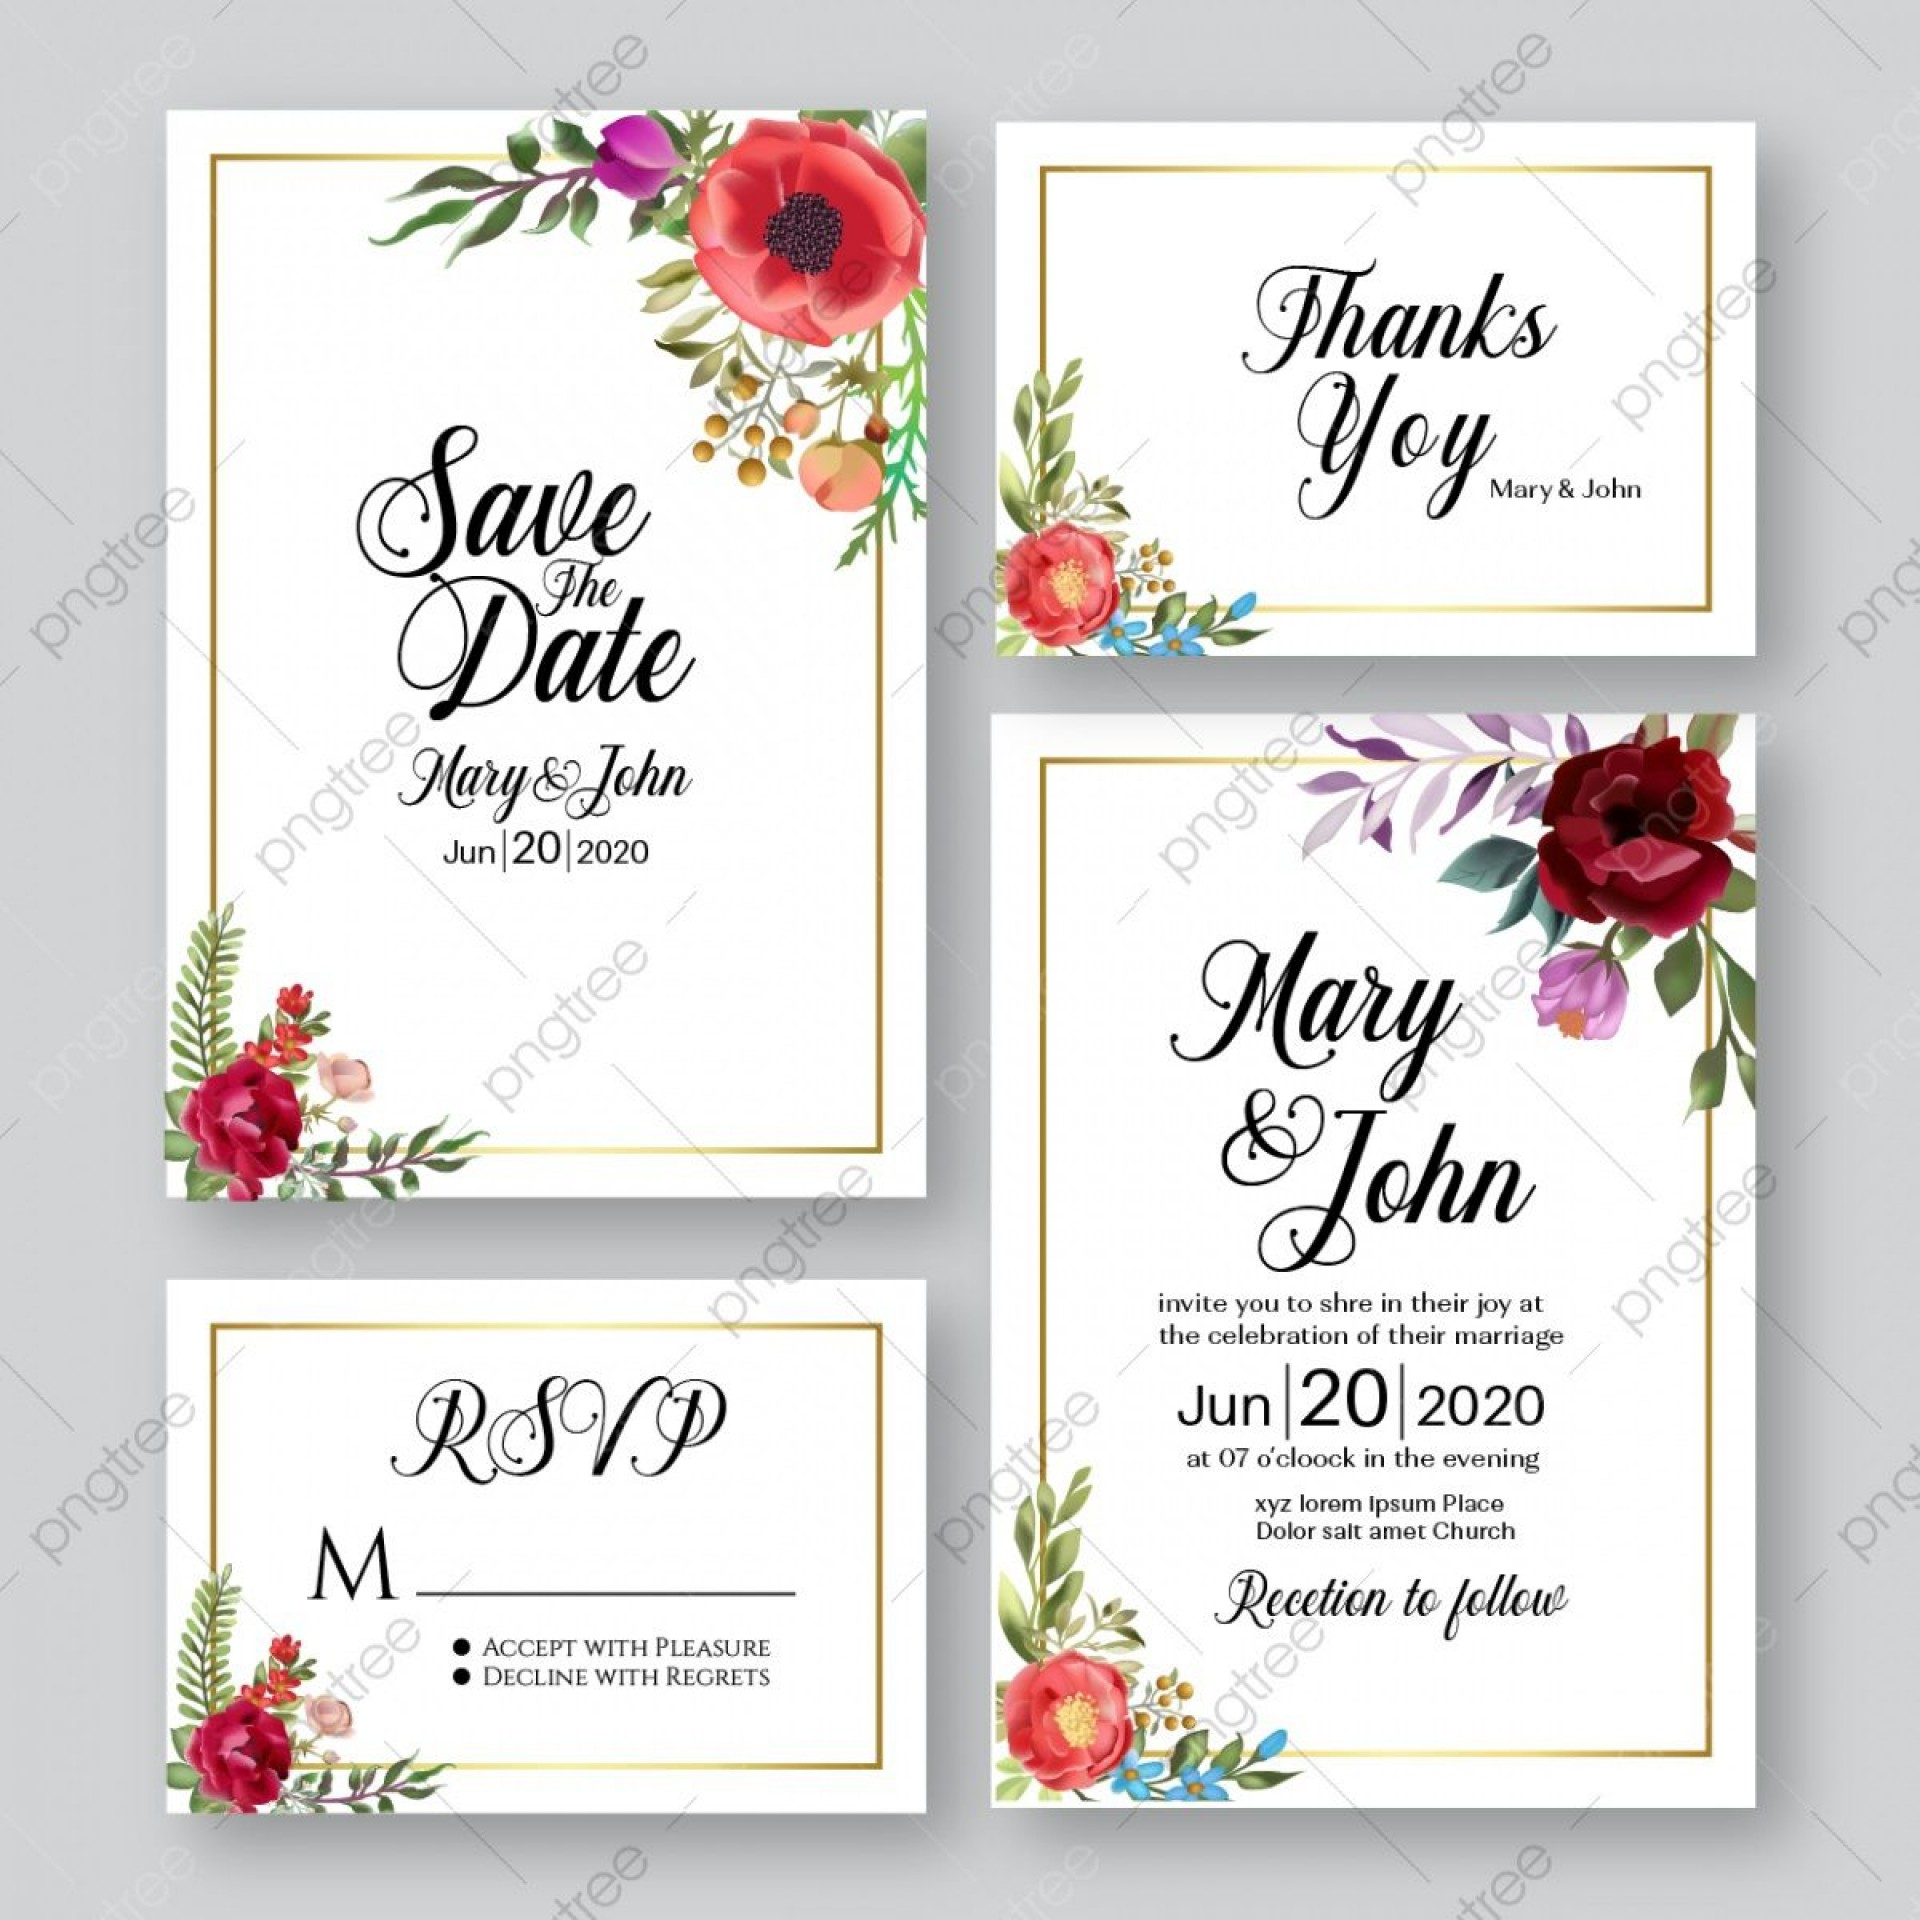 009 Awesome Free Download Invitation Card Design Inspiration  Birthday Party Blank Wedding Template Software1920